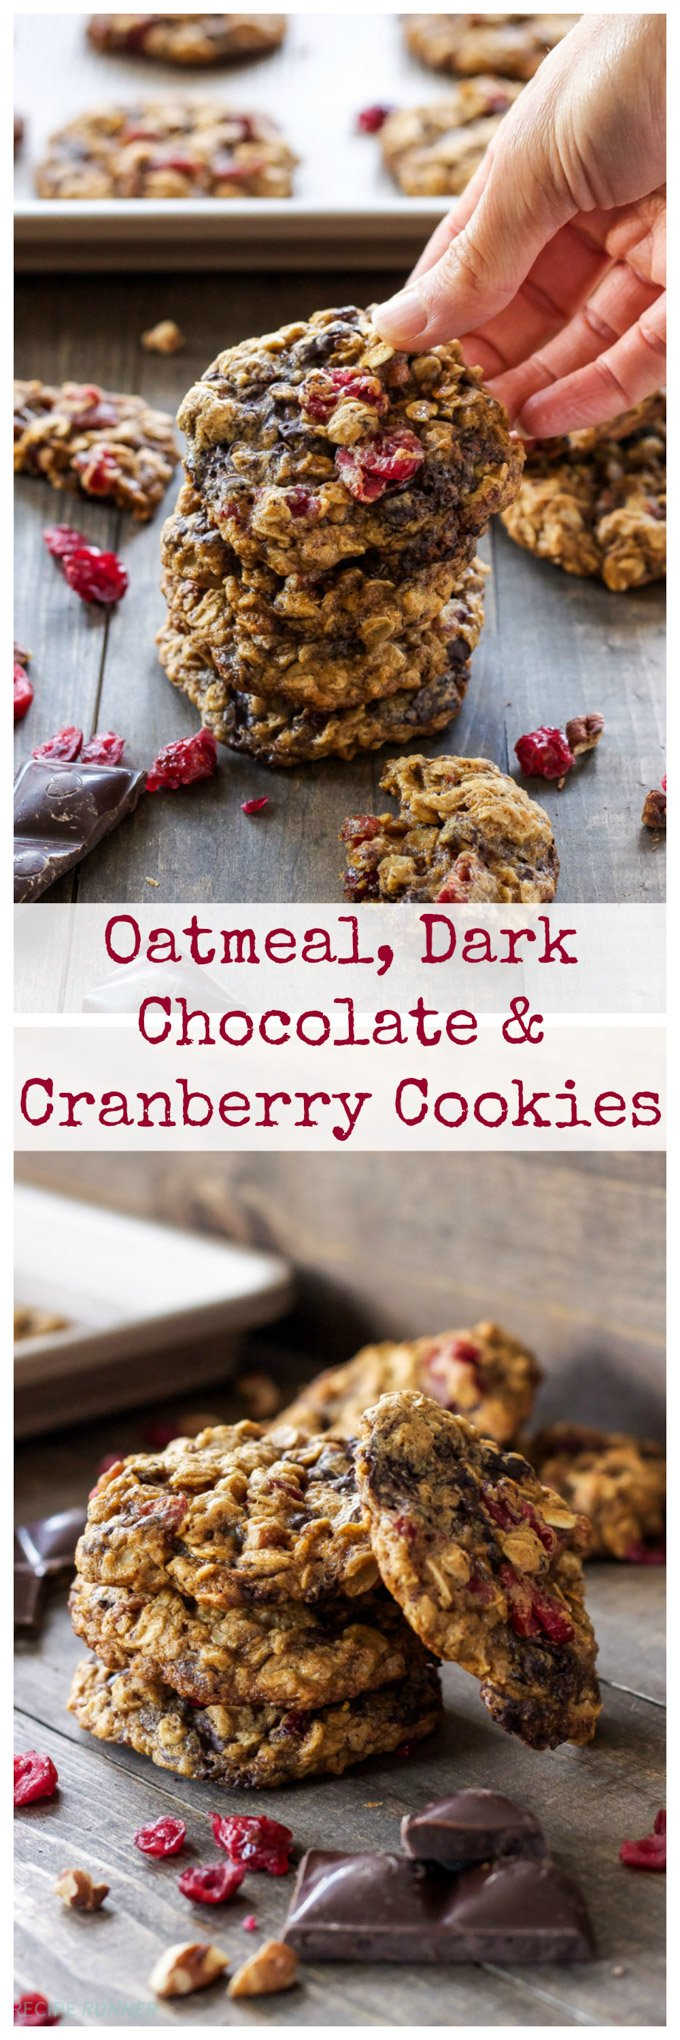 Dark Chocolate Cranberry Cookies Recipe — Dishmaps